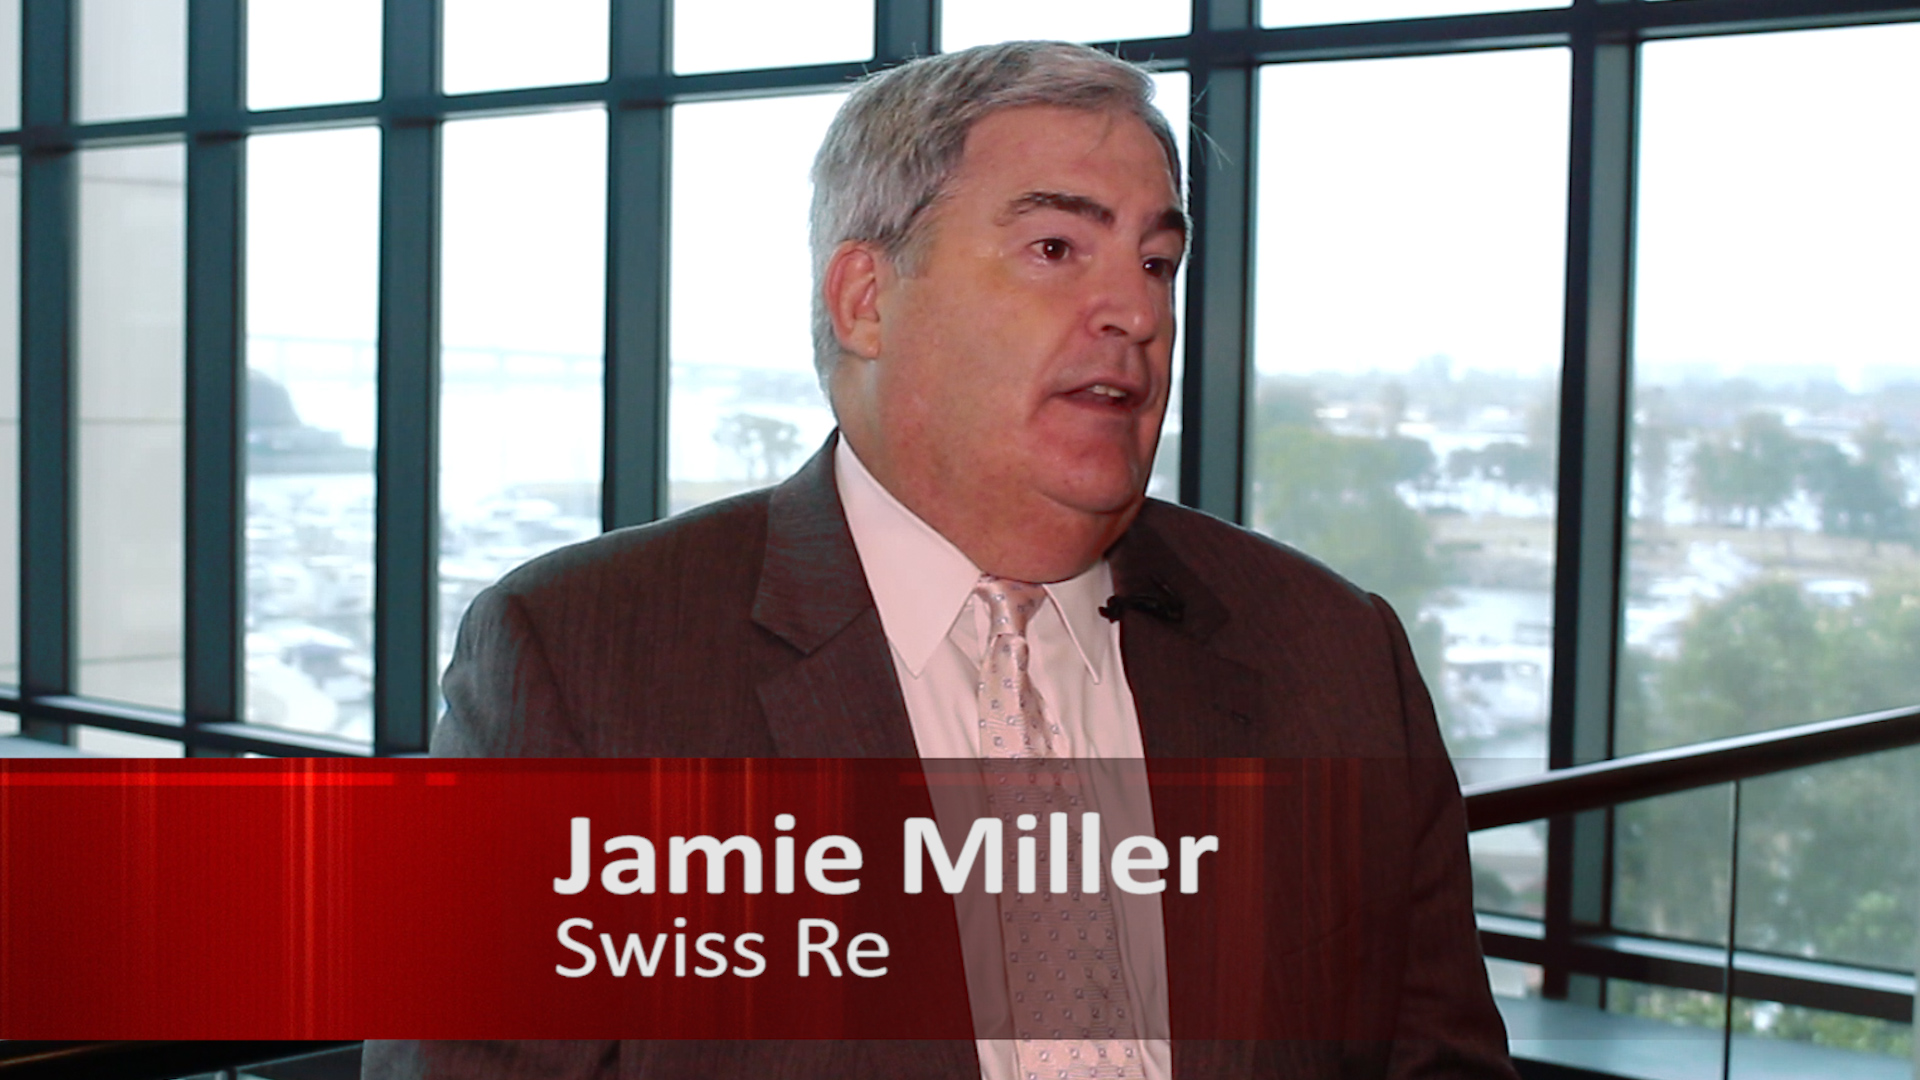 Jaime Miller - Swiss Re